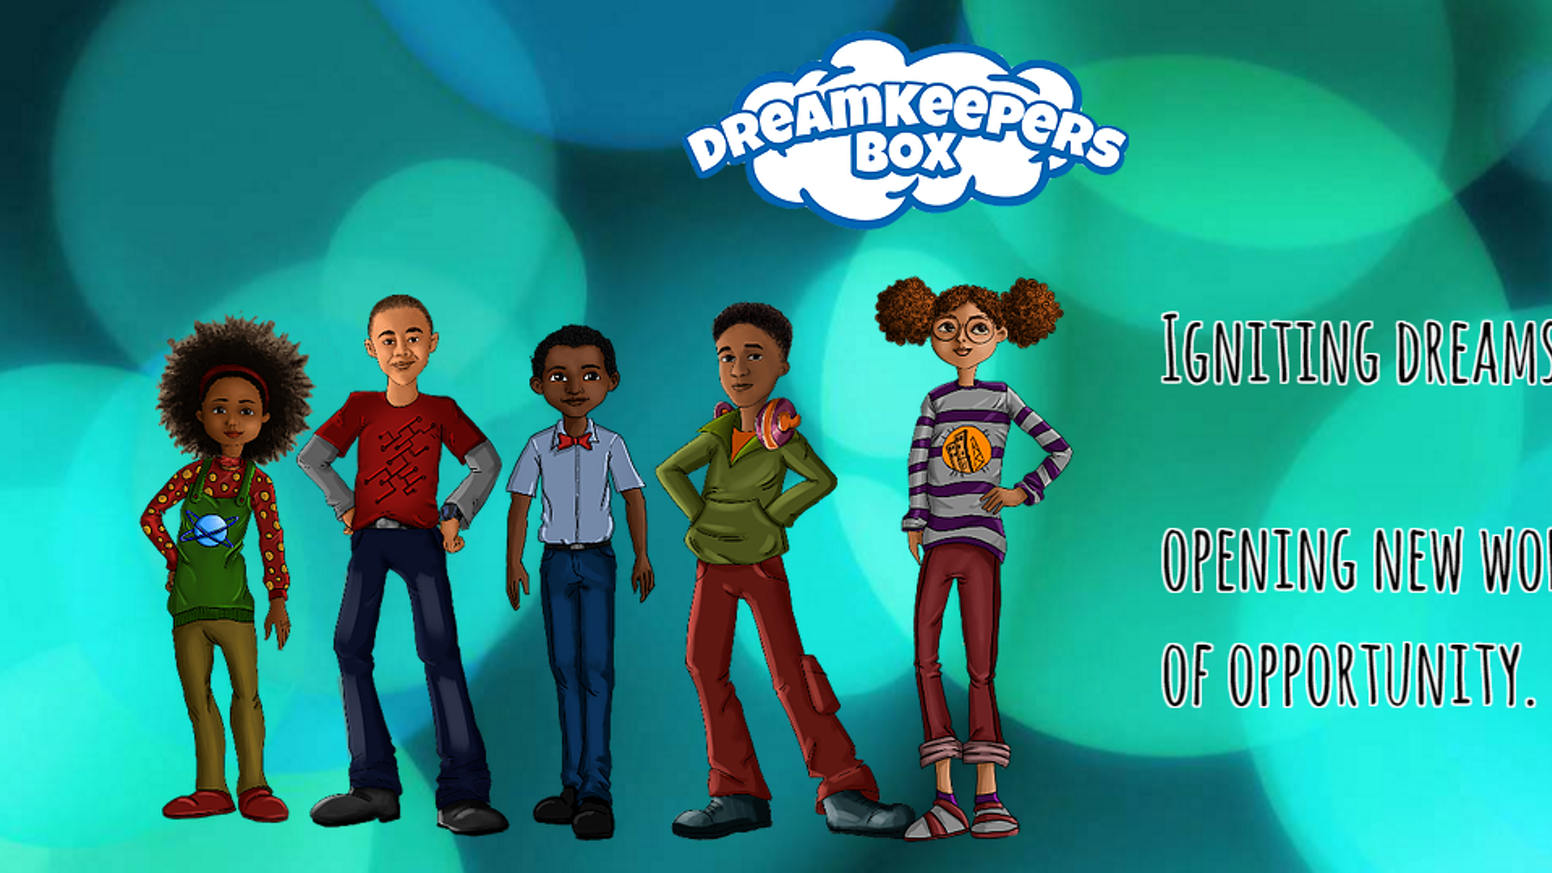 A monthly subscription box that allows children to explore careers and learn about African American leaders in various industries